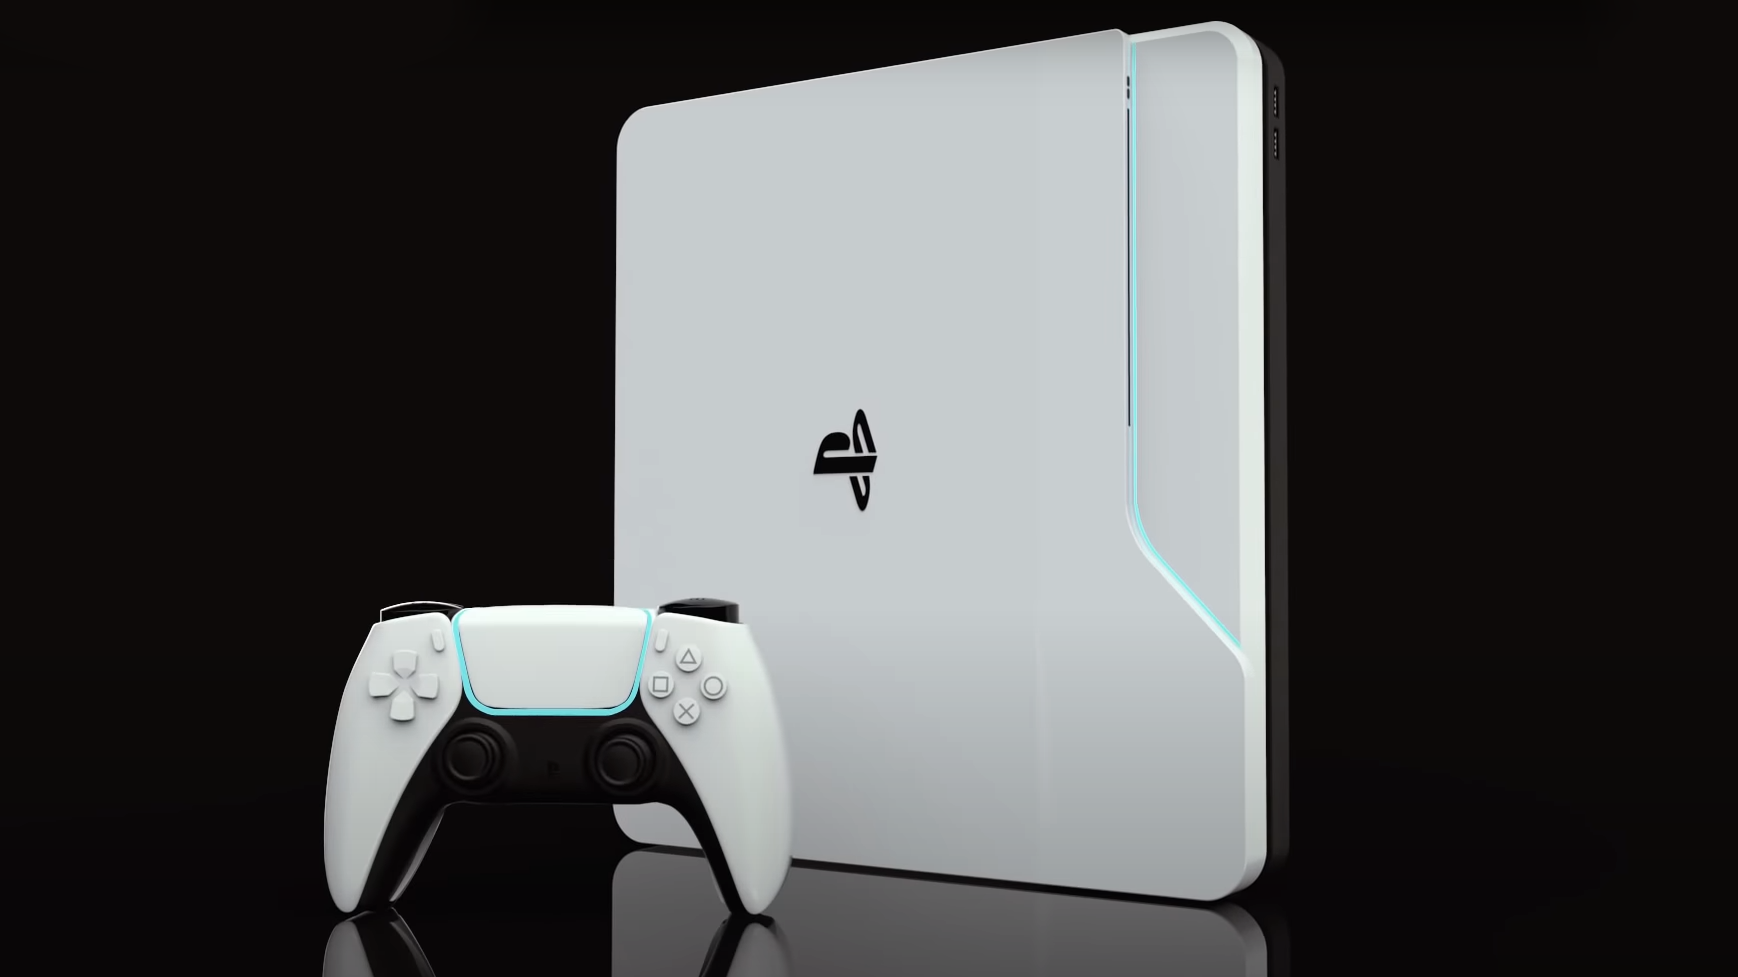 Ps5 Video We Just Can T Stop Gazing At This Stunning Playstation 5 Design T3